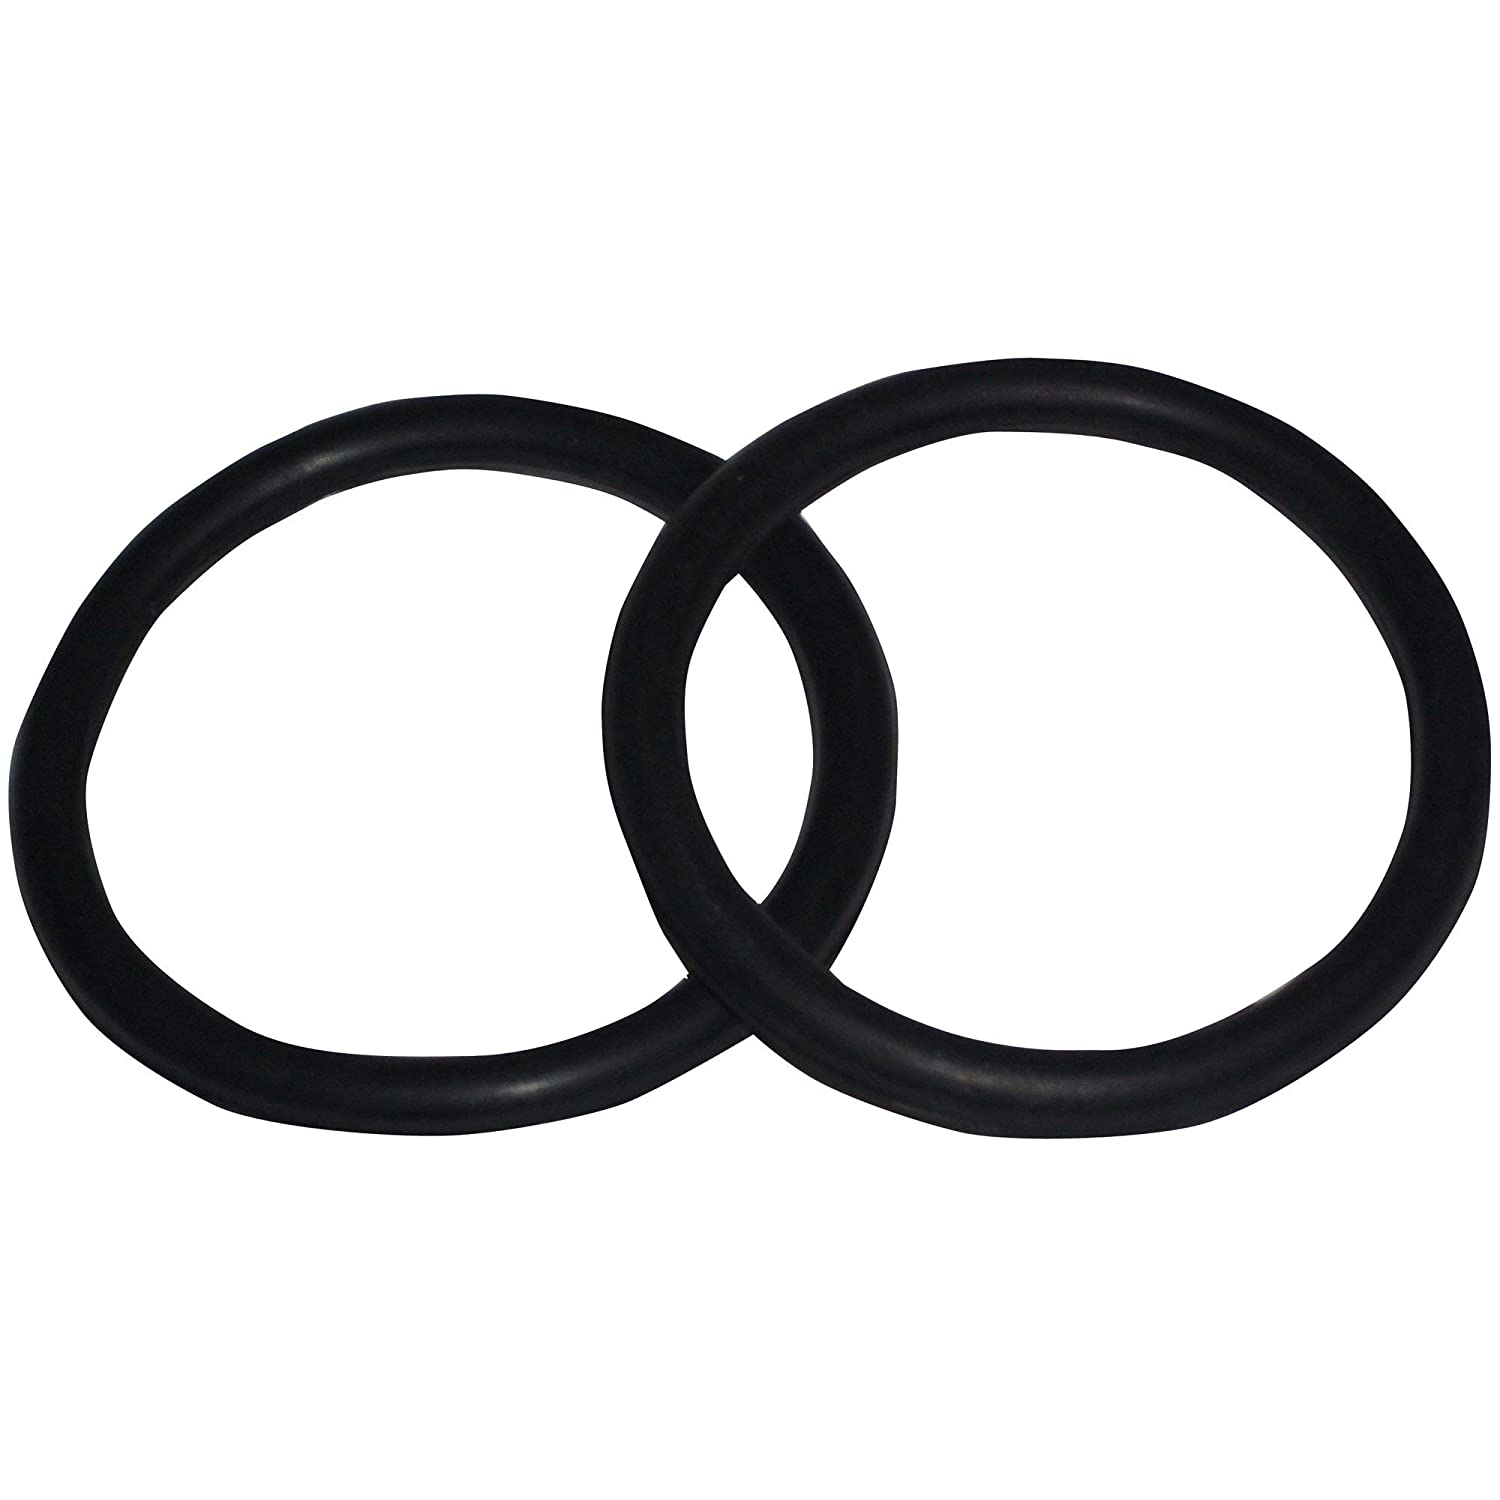 BITZ RUBBER RINGS FOR PEACOCK SAFETY STIRRUPS EQUINE HORSE TACK & EQUIPMENT